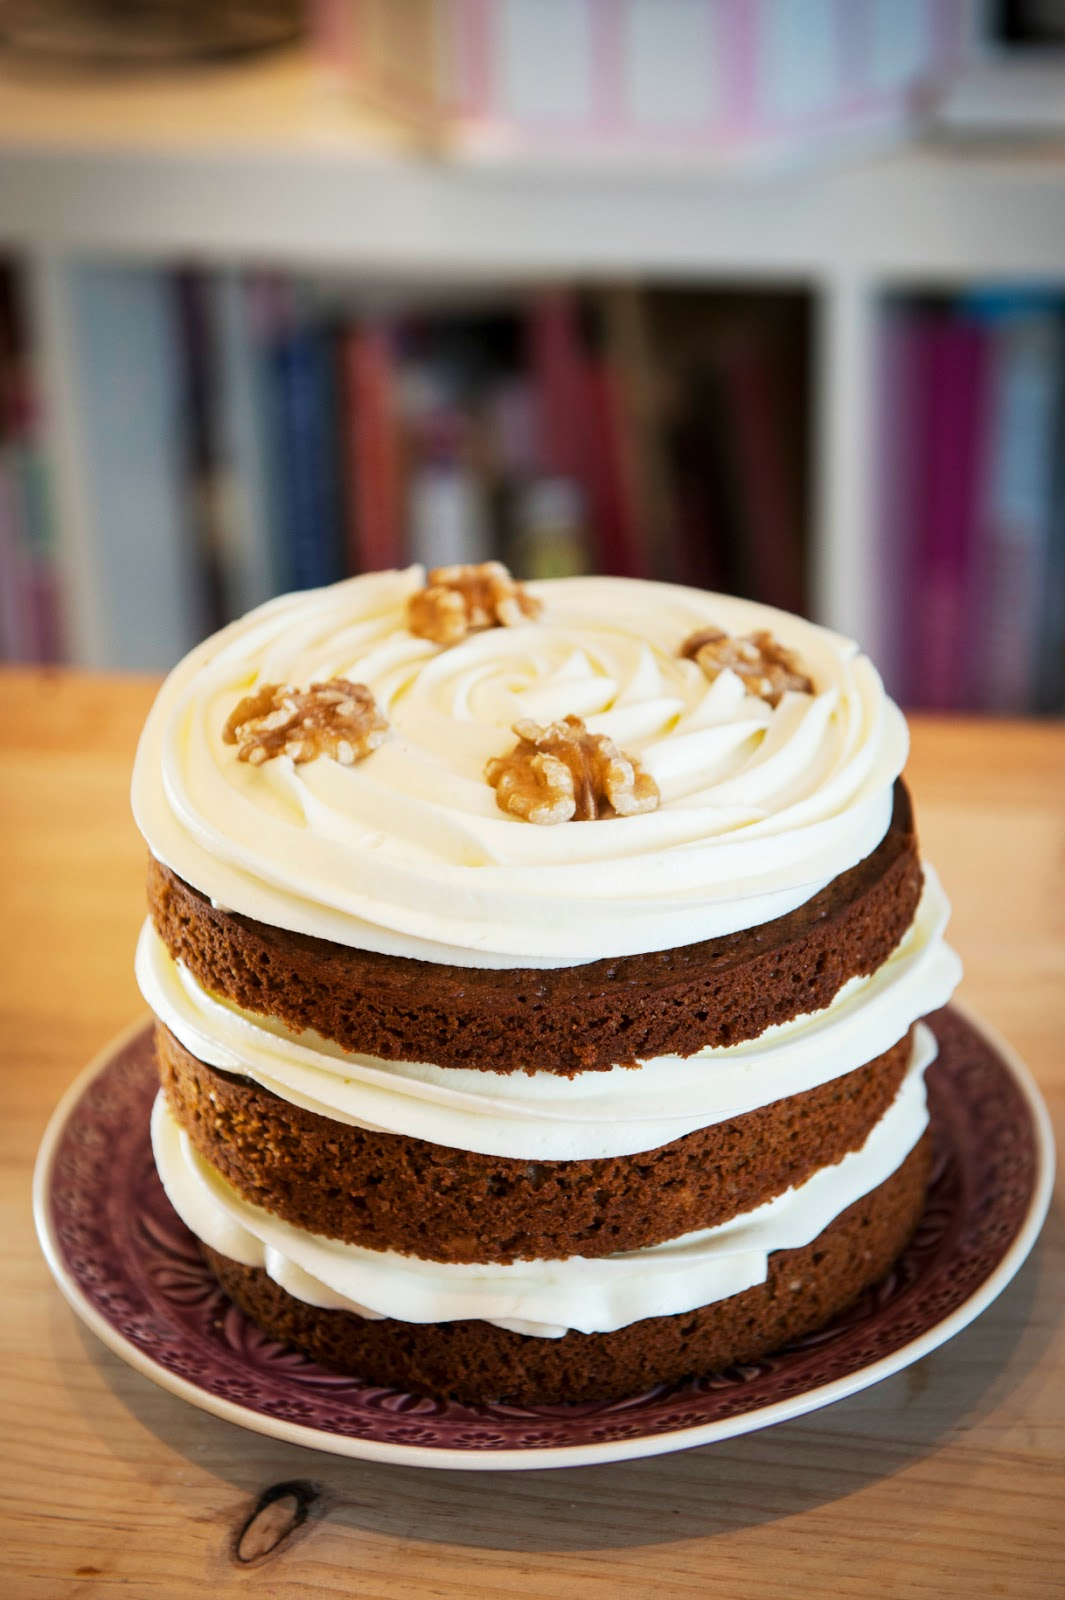 Layer Cake de café, nueces y crema de queso.